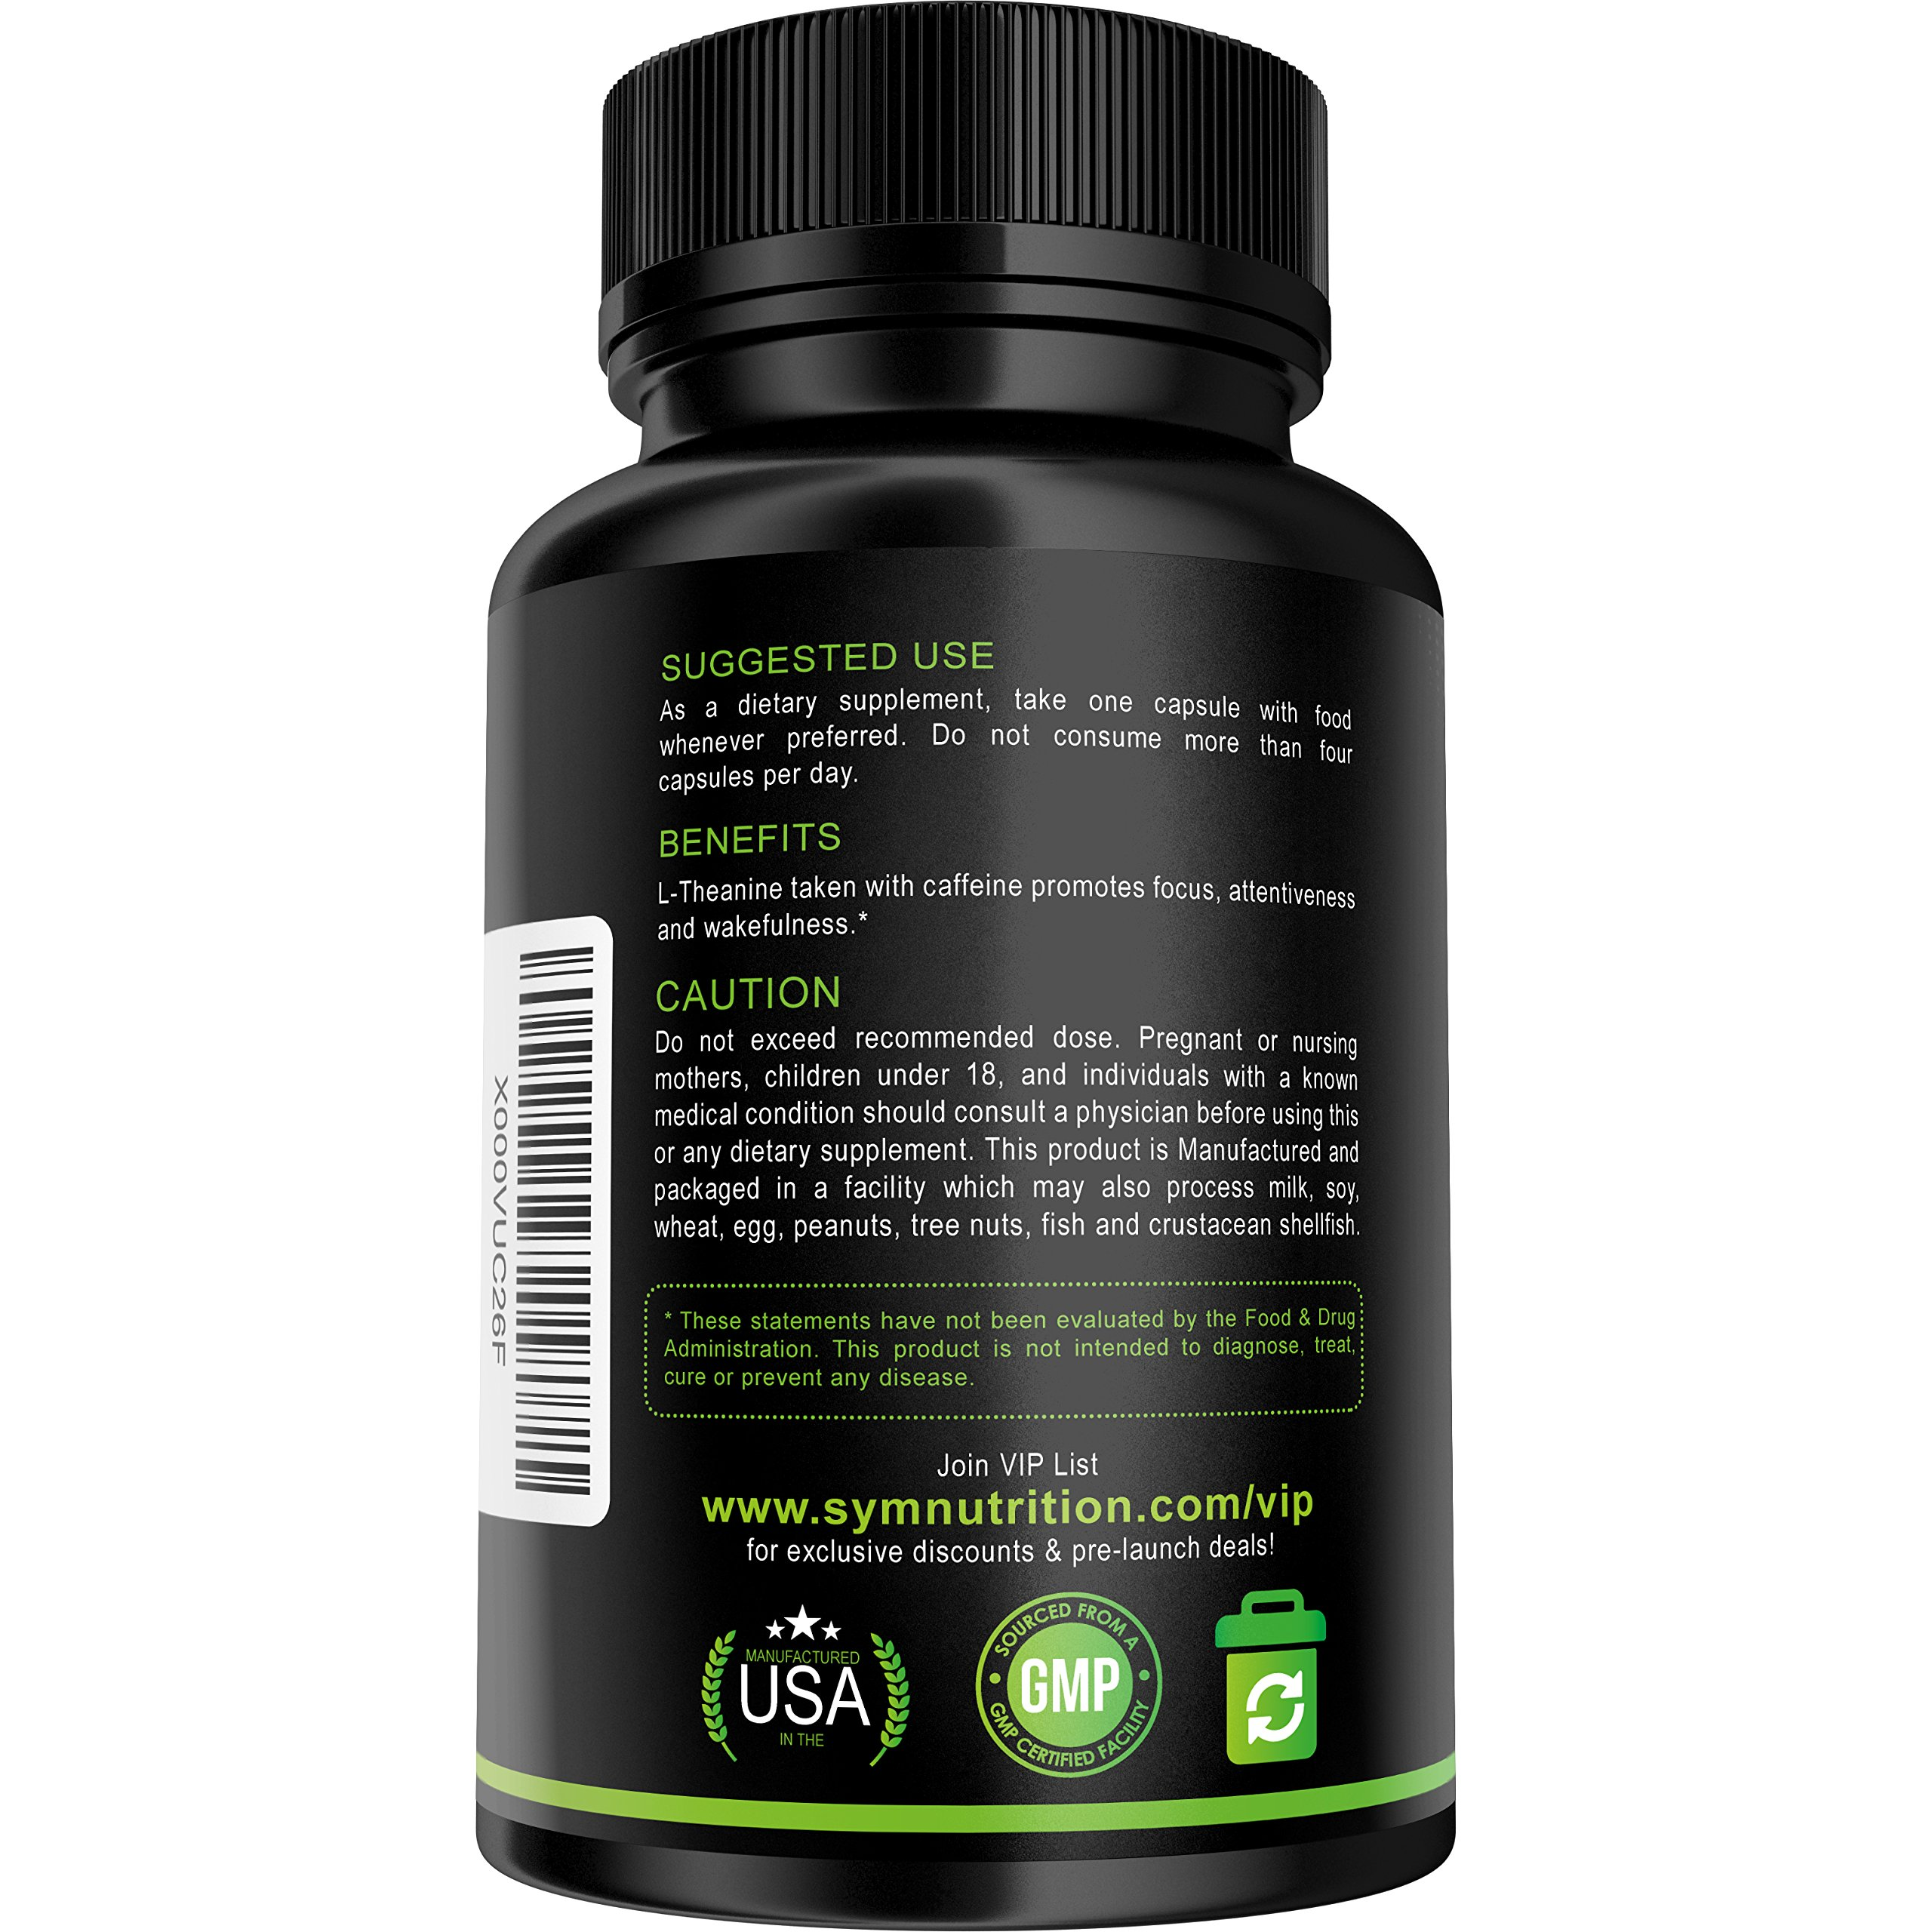 Caffeine 100mg, L-Theanine 200mg - 90 Count (V-Capsules); Taken for Better Focus, Energy, Mood & Wakefulness | Nootropic Stack | Non-GMO & Gluten Free by SYM Nutrition (Image #3)